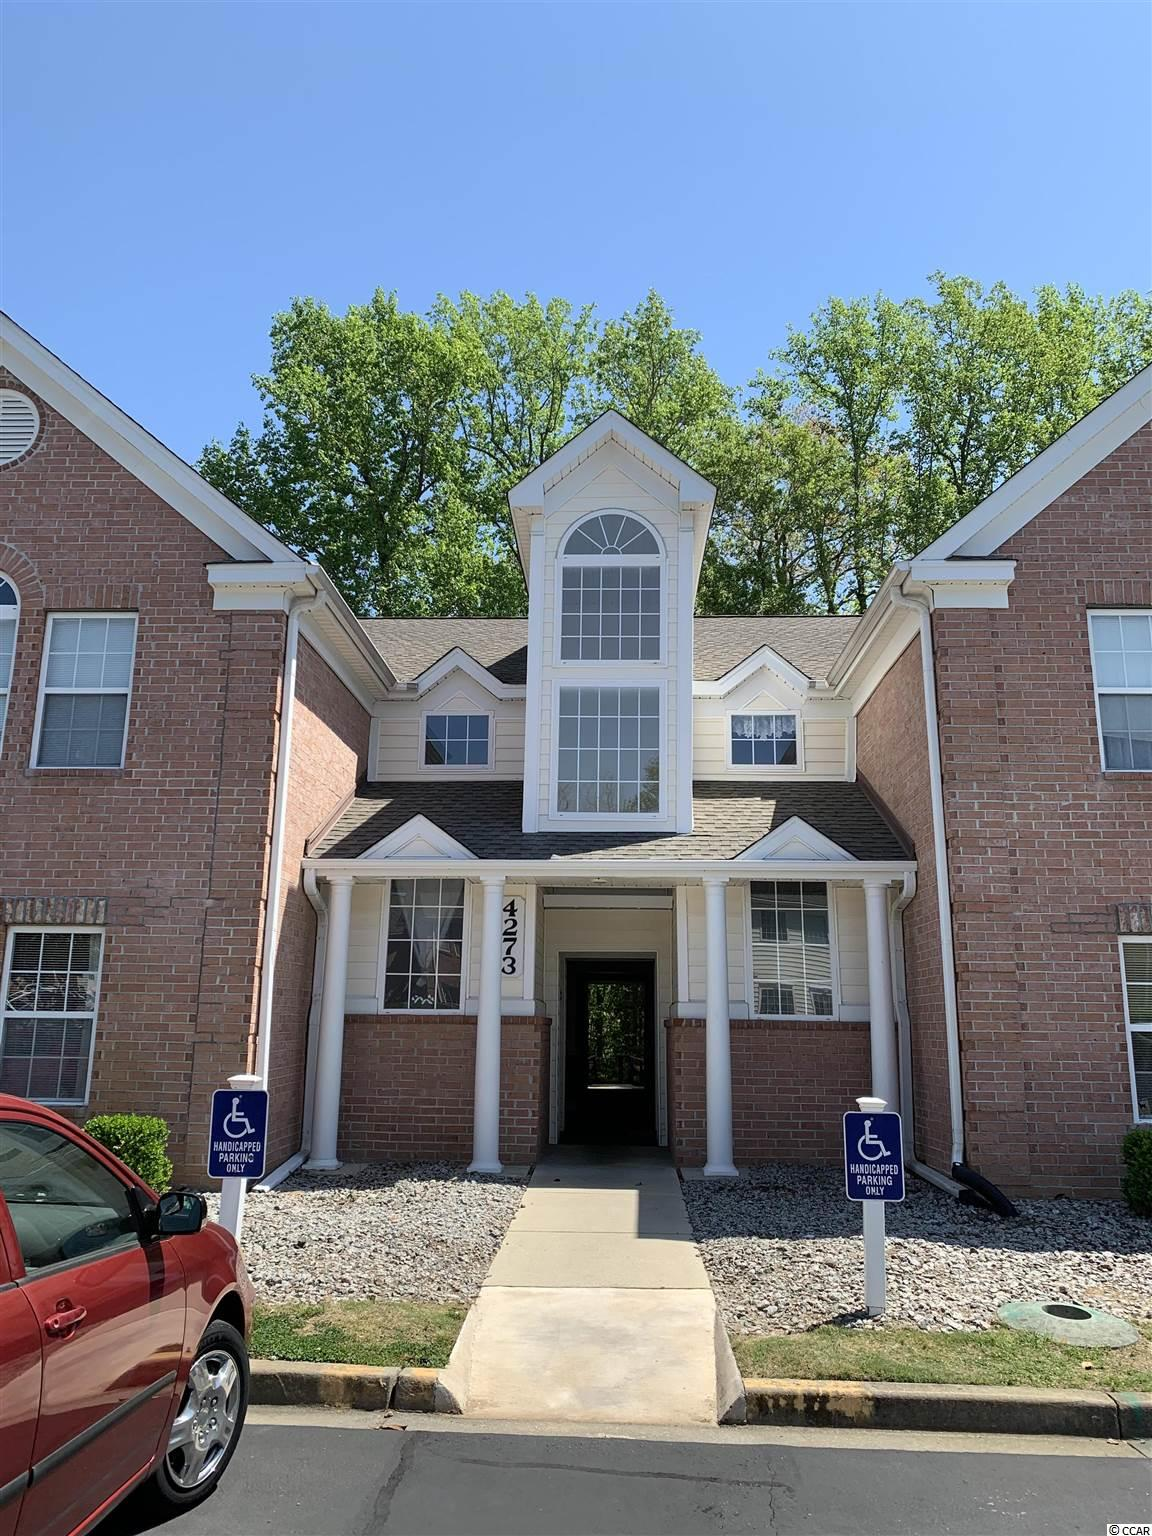 BEAUTIFULLY RENOVATED KITCHEN, 1st FLOOR, ALL APPLIANCES REPLACED 2019 & LAMINATE FLOORS (2018). Three Bedroom/Two Full Baths plus Carolina Room. Kitchen was FULLY renovated including new cabinetry in 2019. Enjoy QUARTZ countertops with waterfall edge, matching Whirlpool stainless steel appliances including dishwasher (all new 2019), Braun Range Hood, garbage disposal, all new lighting & ceiling fans (2019). Tons of light, neutral paint and laminate flooring throughout. Brand new closet doors. Office freshly painted. The HOA recently replaced the roof and all lintels, sills and associated building trim. Water Heater (2013) Bryant HVAC (2012). New Amana washer & dryer (2019) plus large Carolina Room, as well as common area seating at back of building with greenspace behind. Close to everything...Marshwalk, Brookgreen Gardens, Huntington Beach State Park, great dining, shopping and medical close by. Come home to the Beach at Riverwood! All measurements are approximate and must be verified by buyer prior to closing.